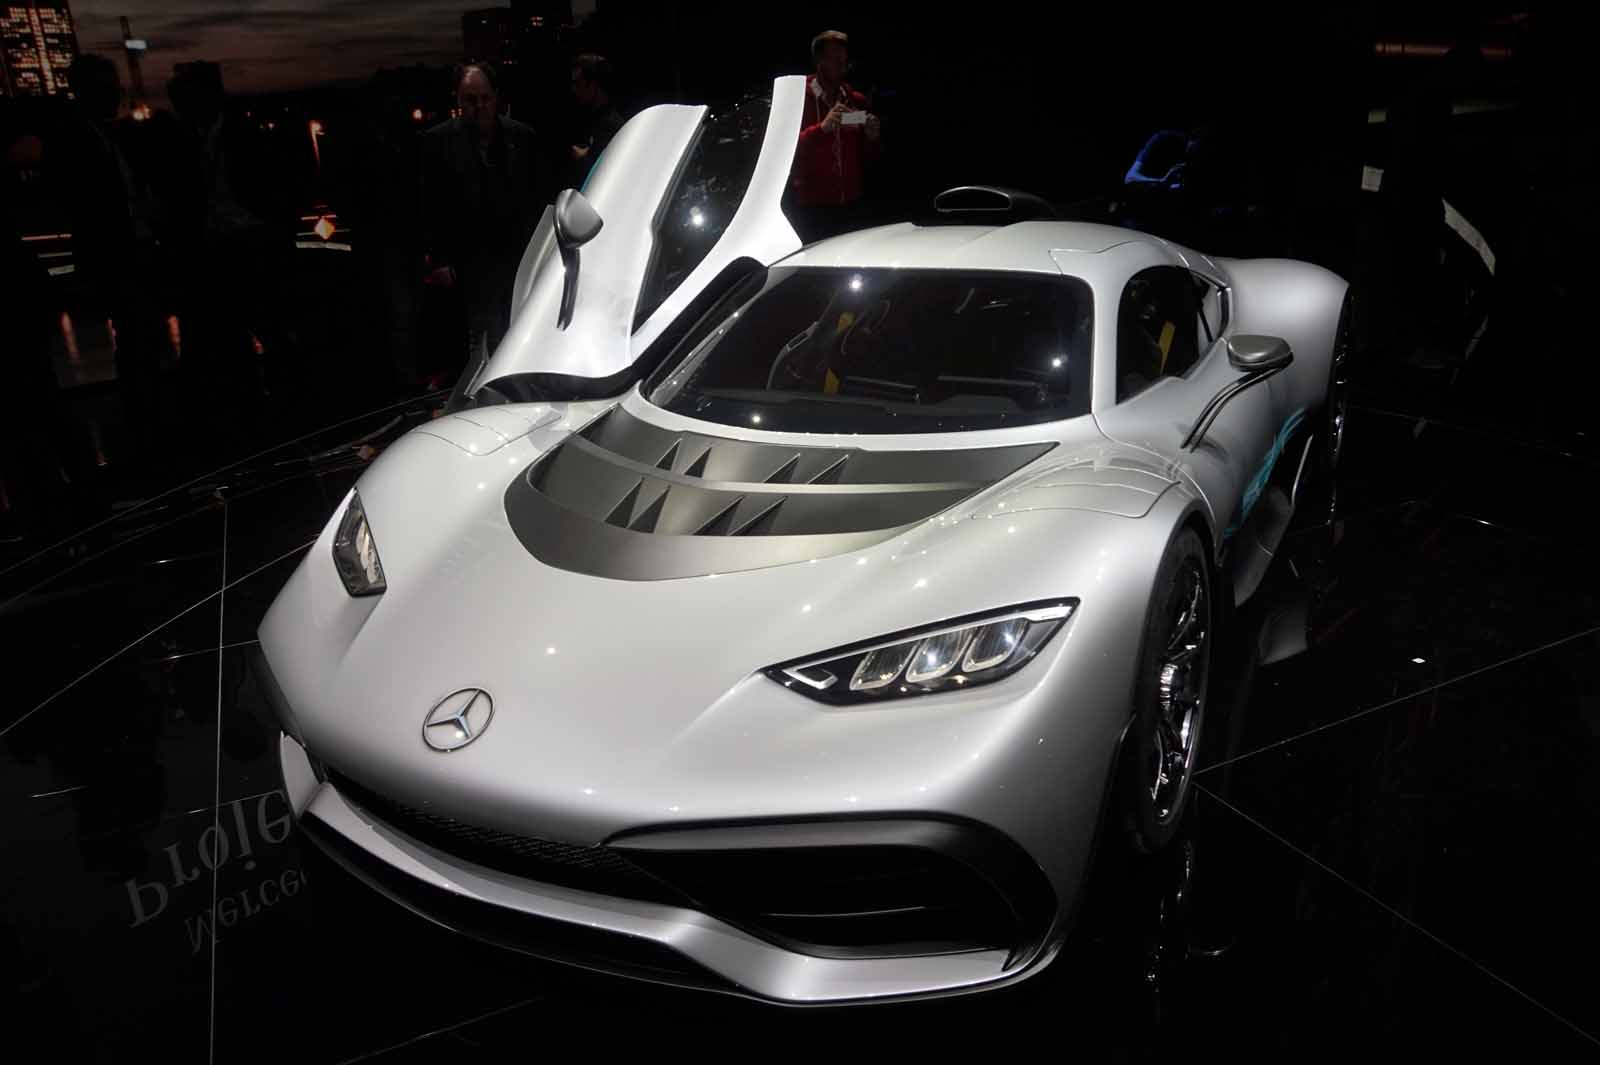 http://www.autoguide.com/blog/wp-content/gallery/mercedes-amg-project-one-live-and-official-photos/Mercedes-AMG-Project-One-24.jpg